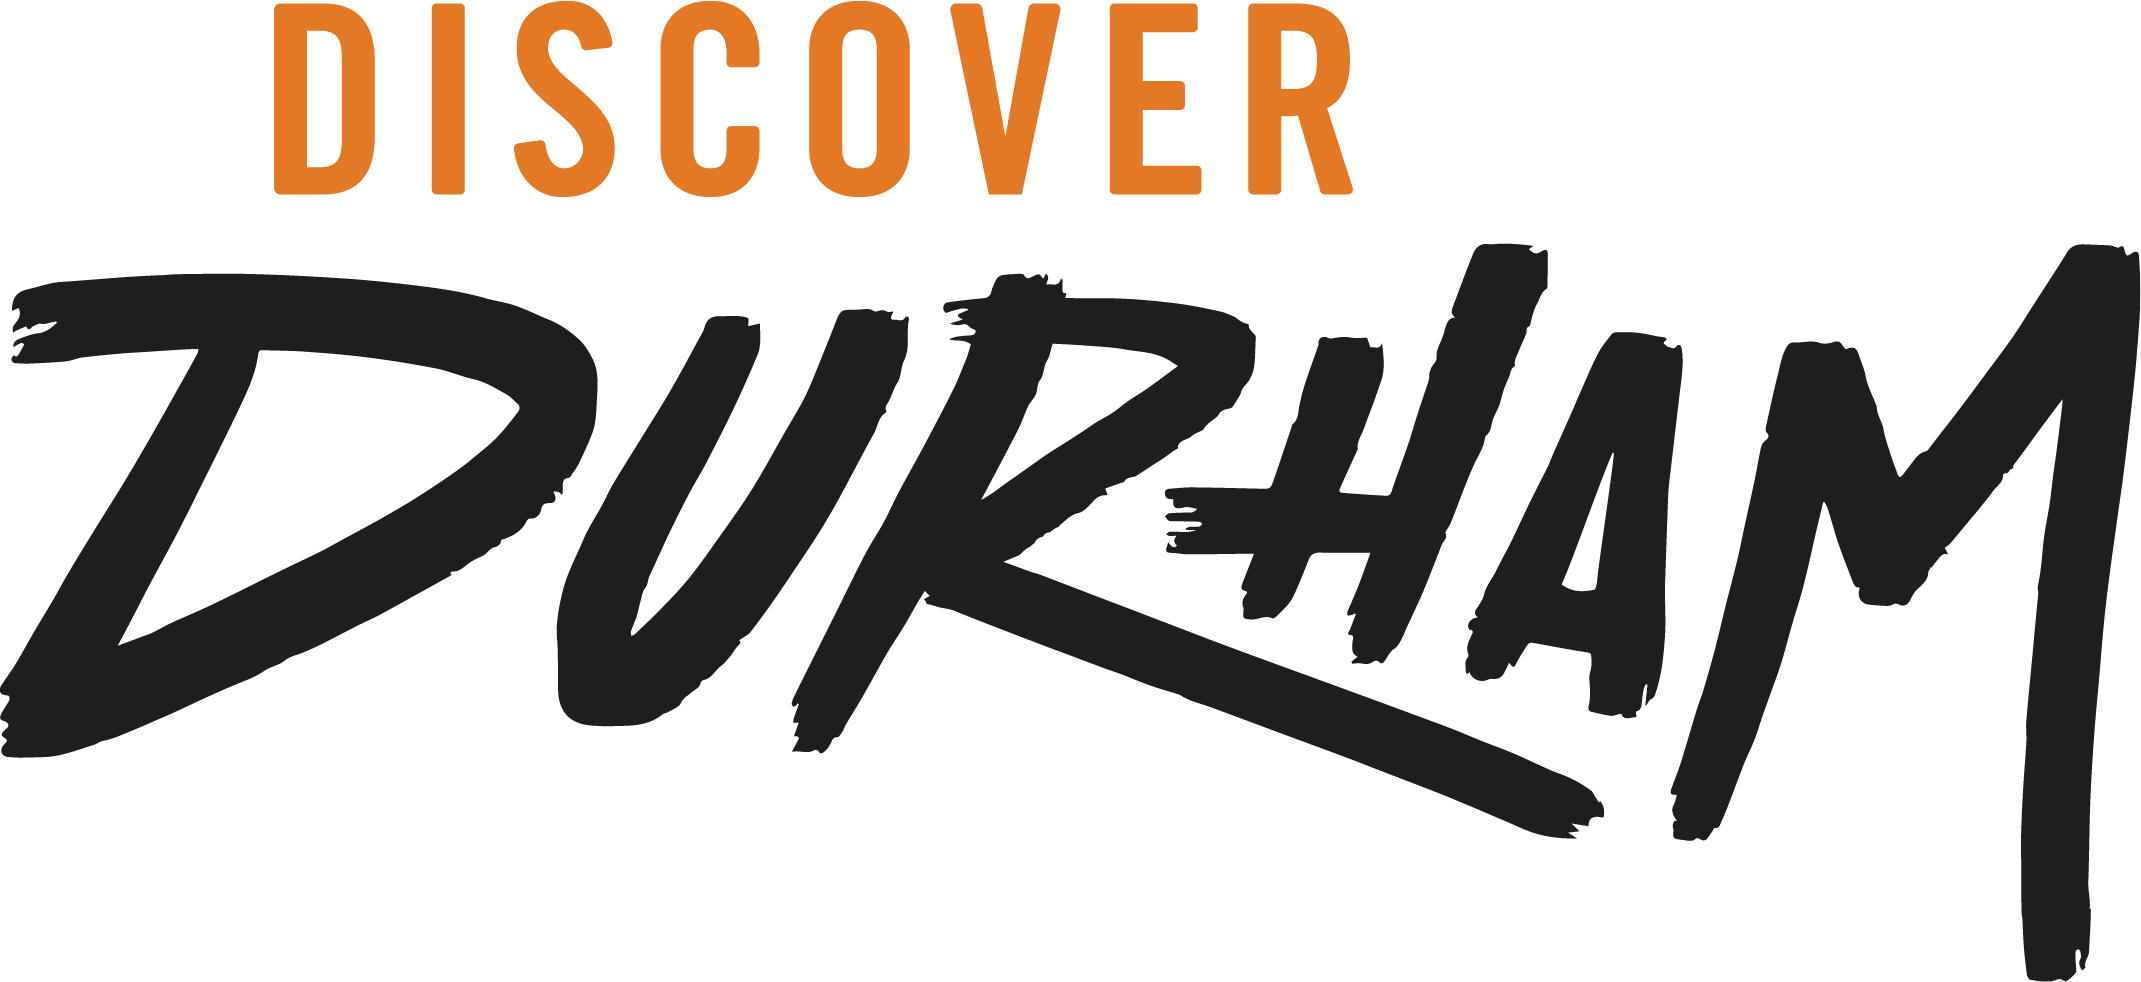 Discover-Durham-Dark-Logo-Light Orange